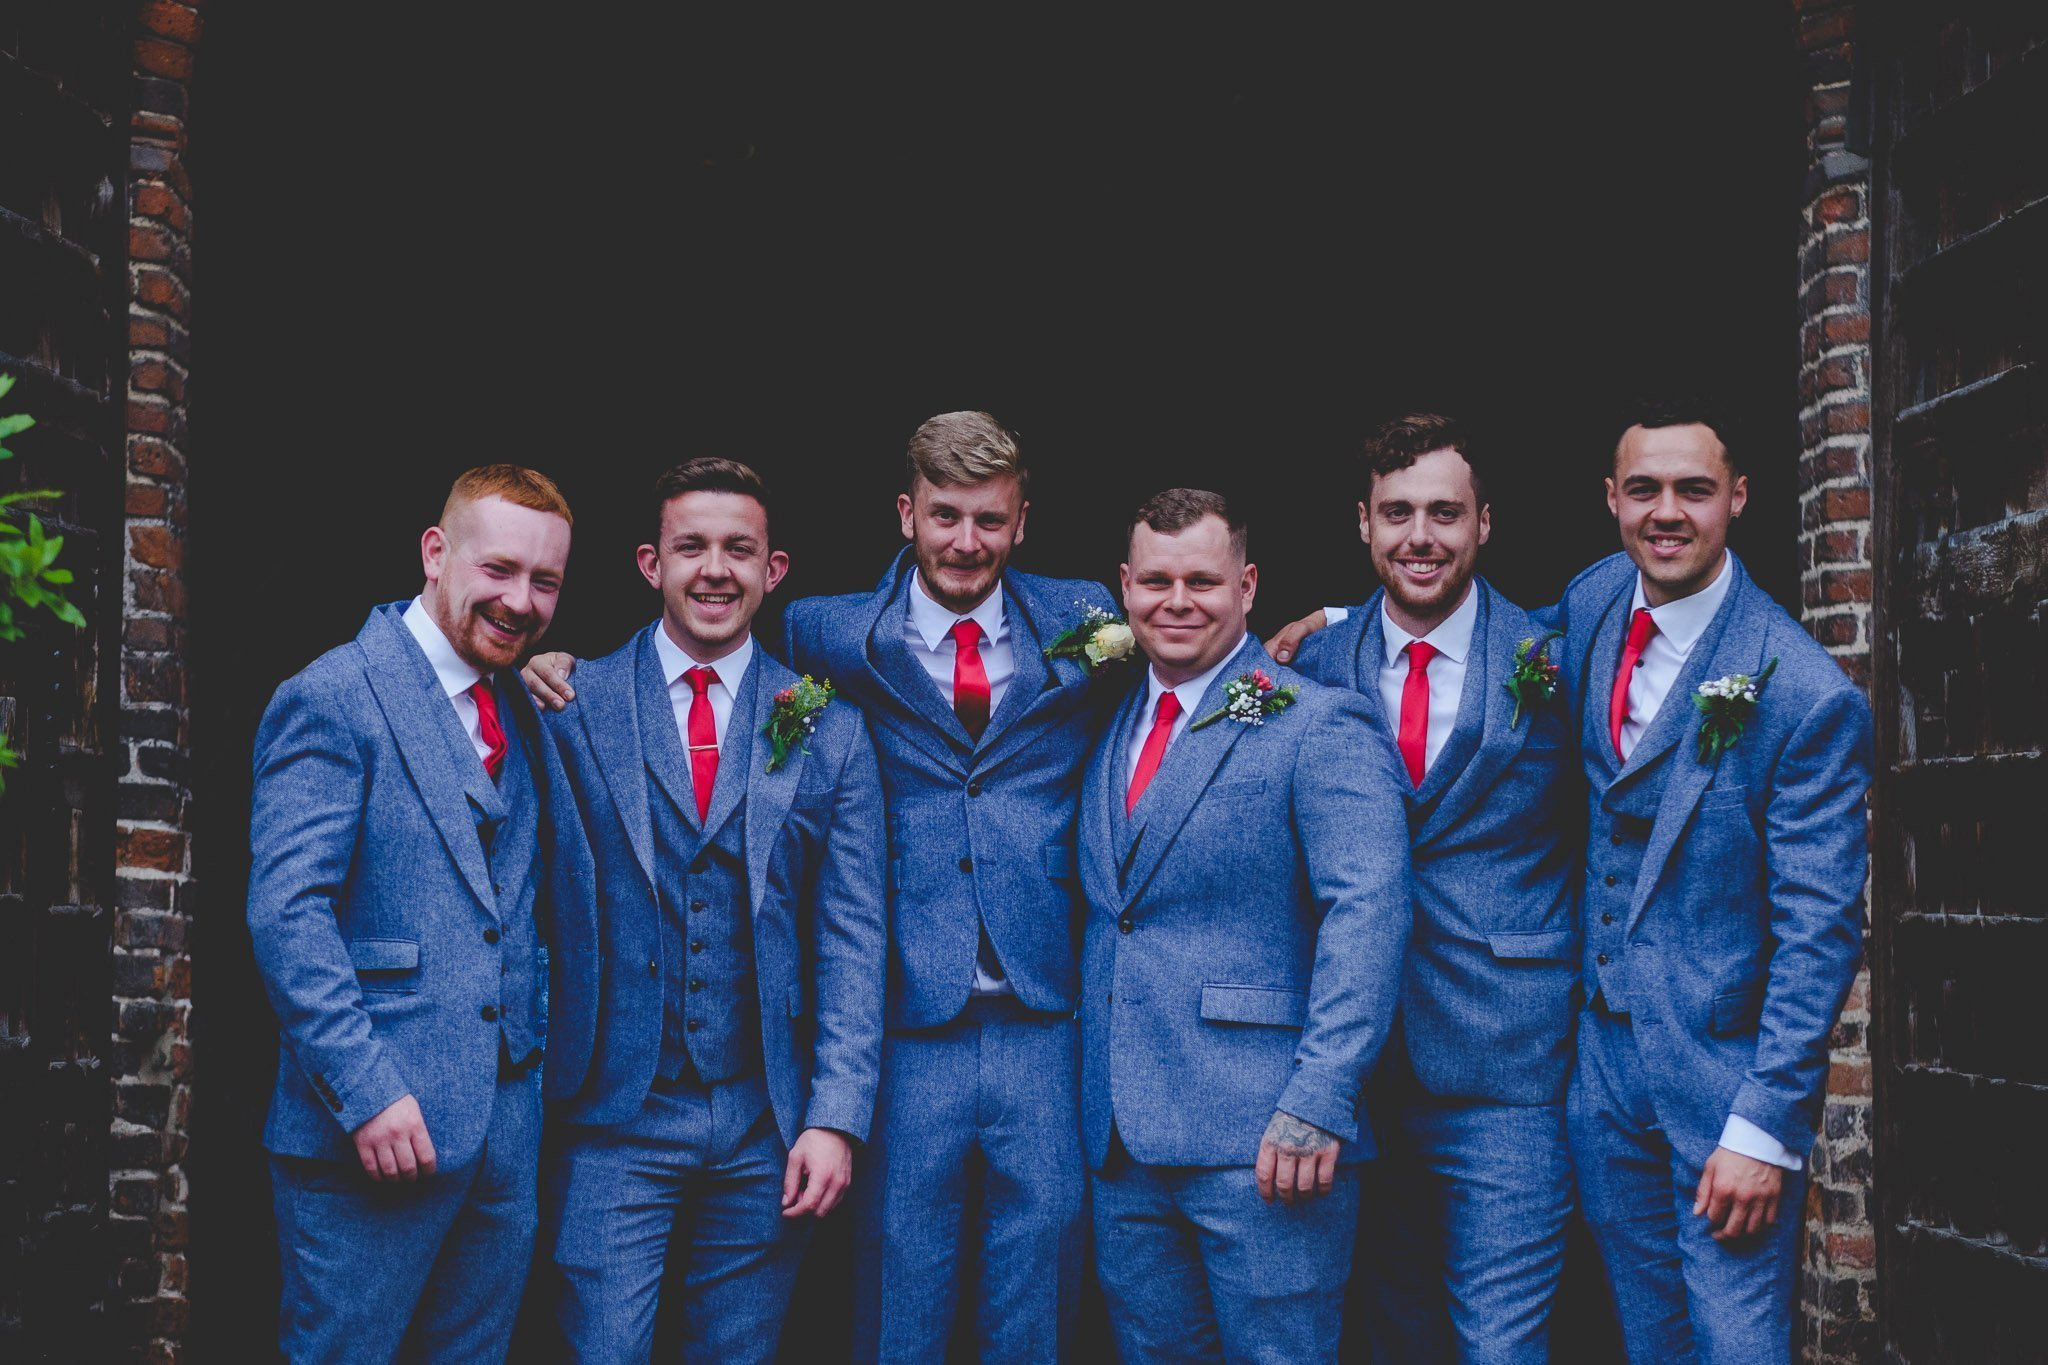 Portrait of groom and groomsmen in blue wool suits with red tie at Leez Priory wedding. Photography by thatthingyoupluck.